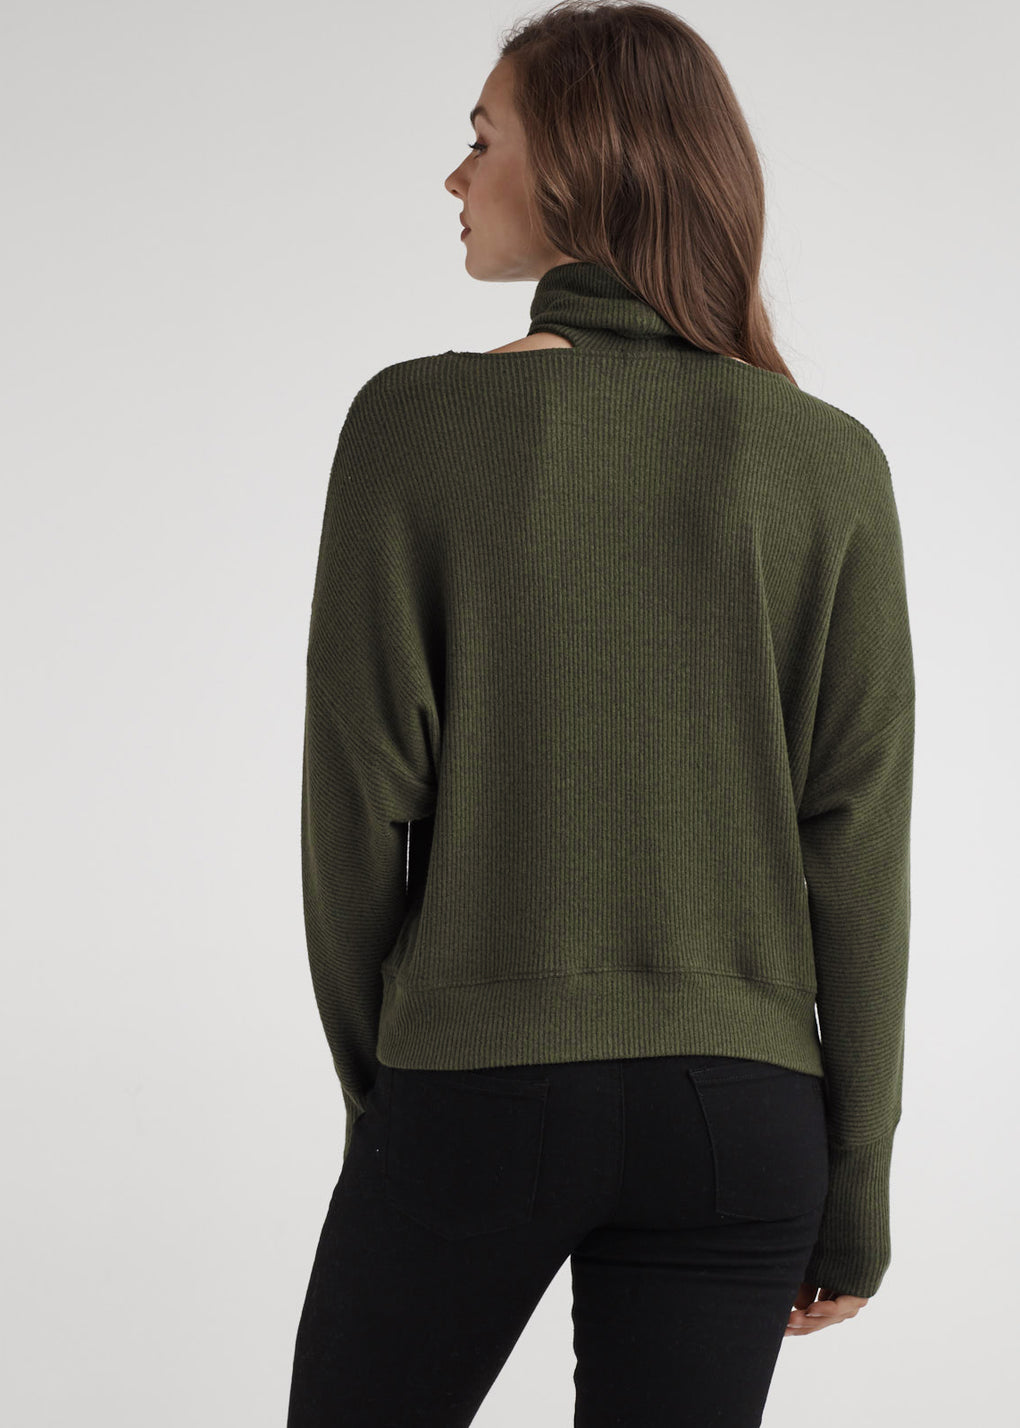 BUTTON SLEEVE MOCK NECK